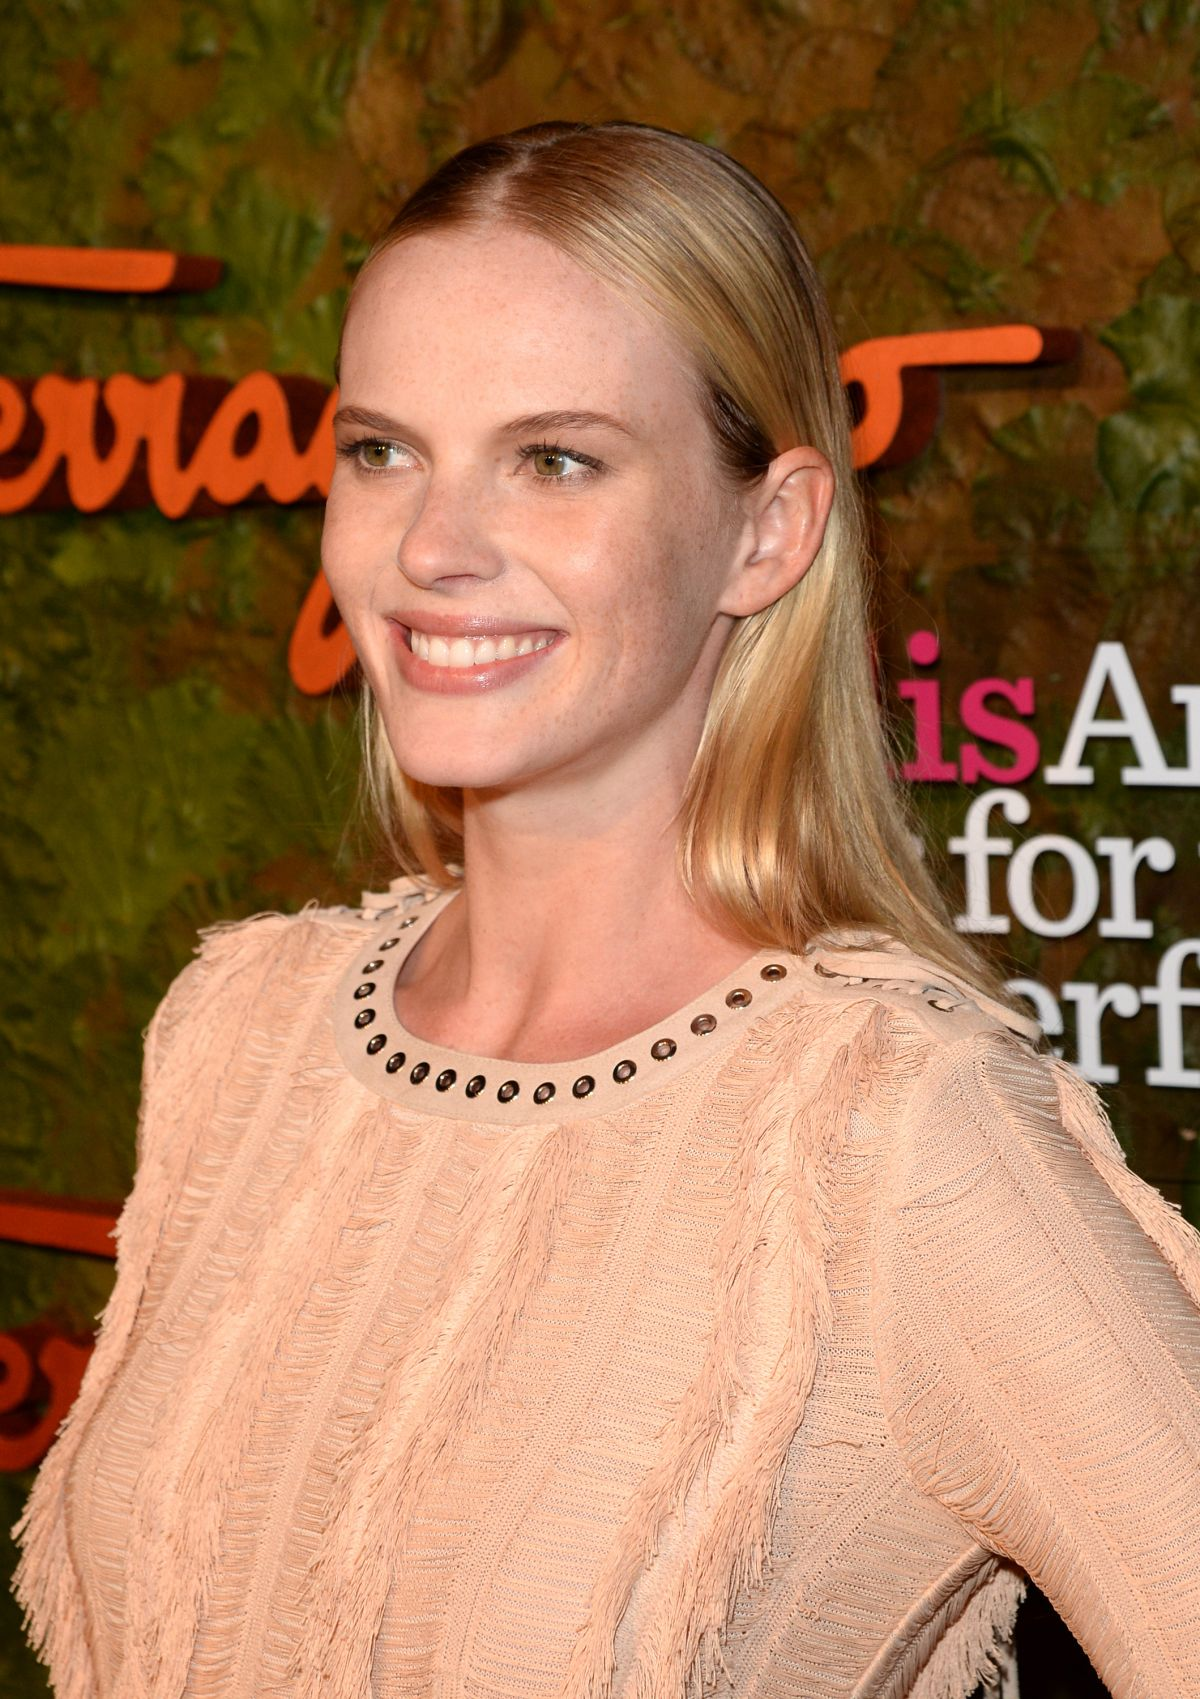 Anne Vyalitsyna At Wallis Annenberg Center For The Performing Arts Inaugural Gala In Beverly Hills